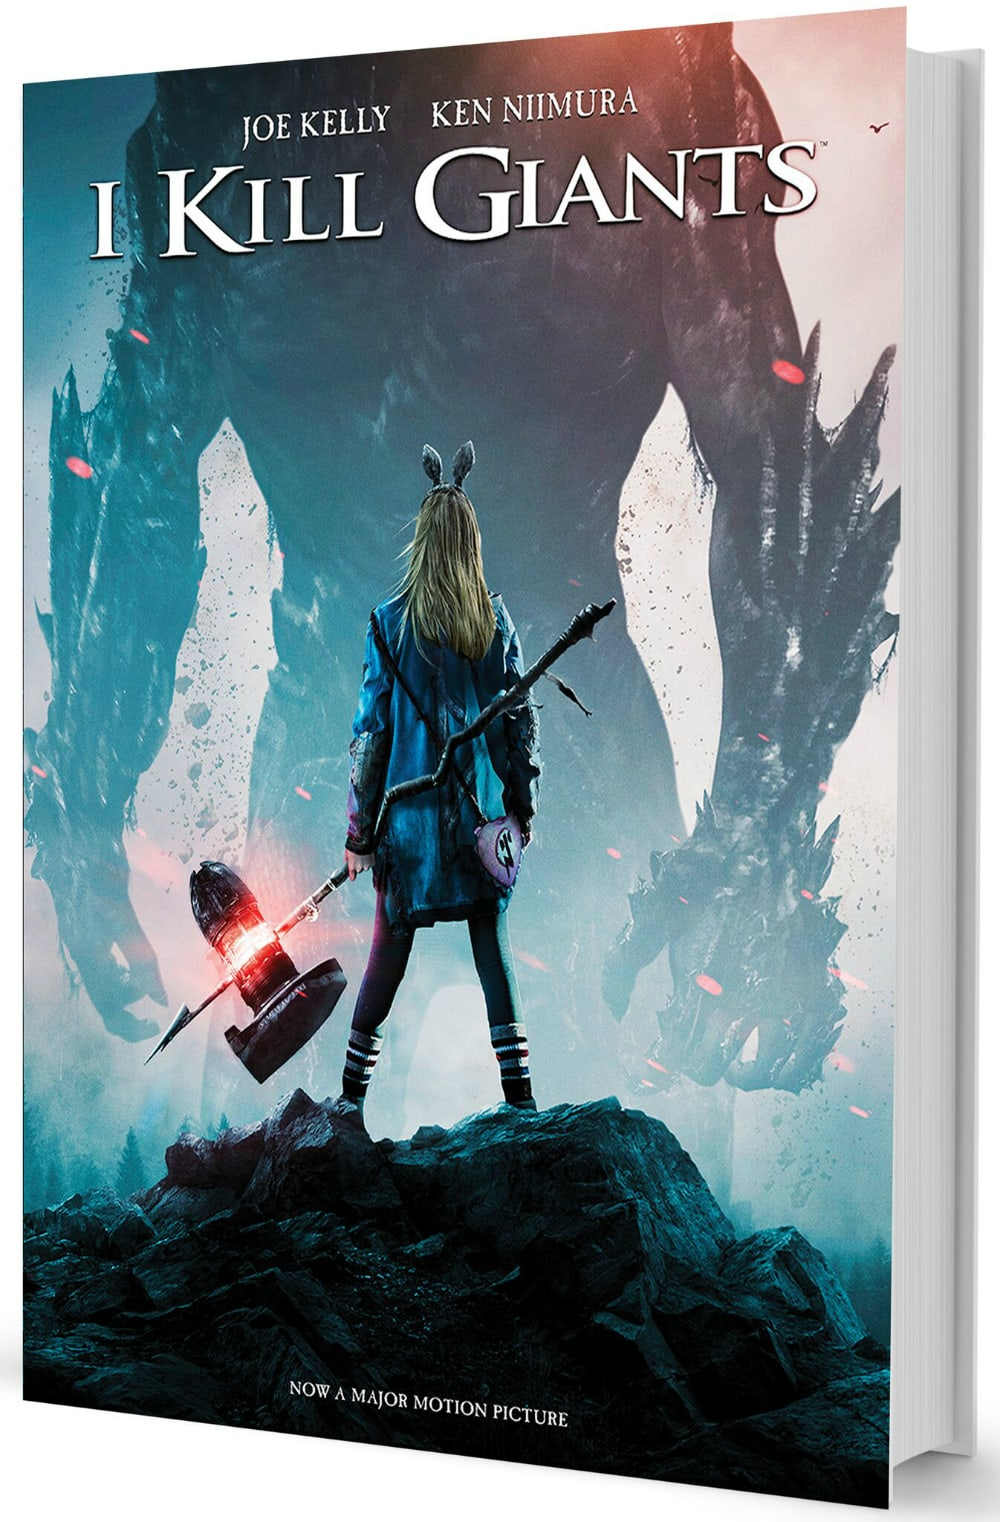 I Kill Giants Movie - A Reason to Celebrate Strong Women